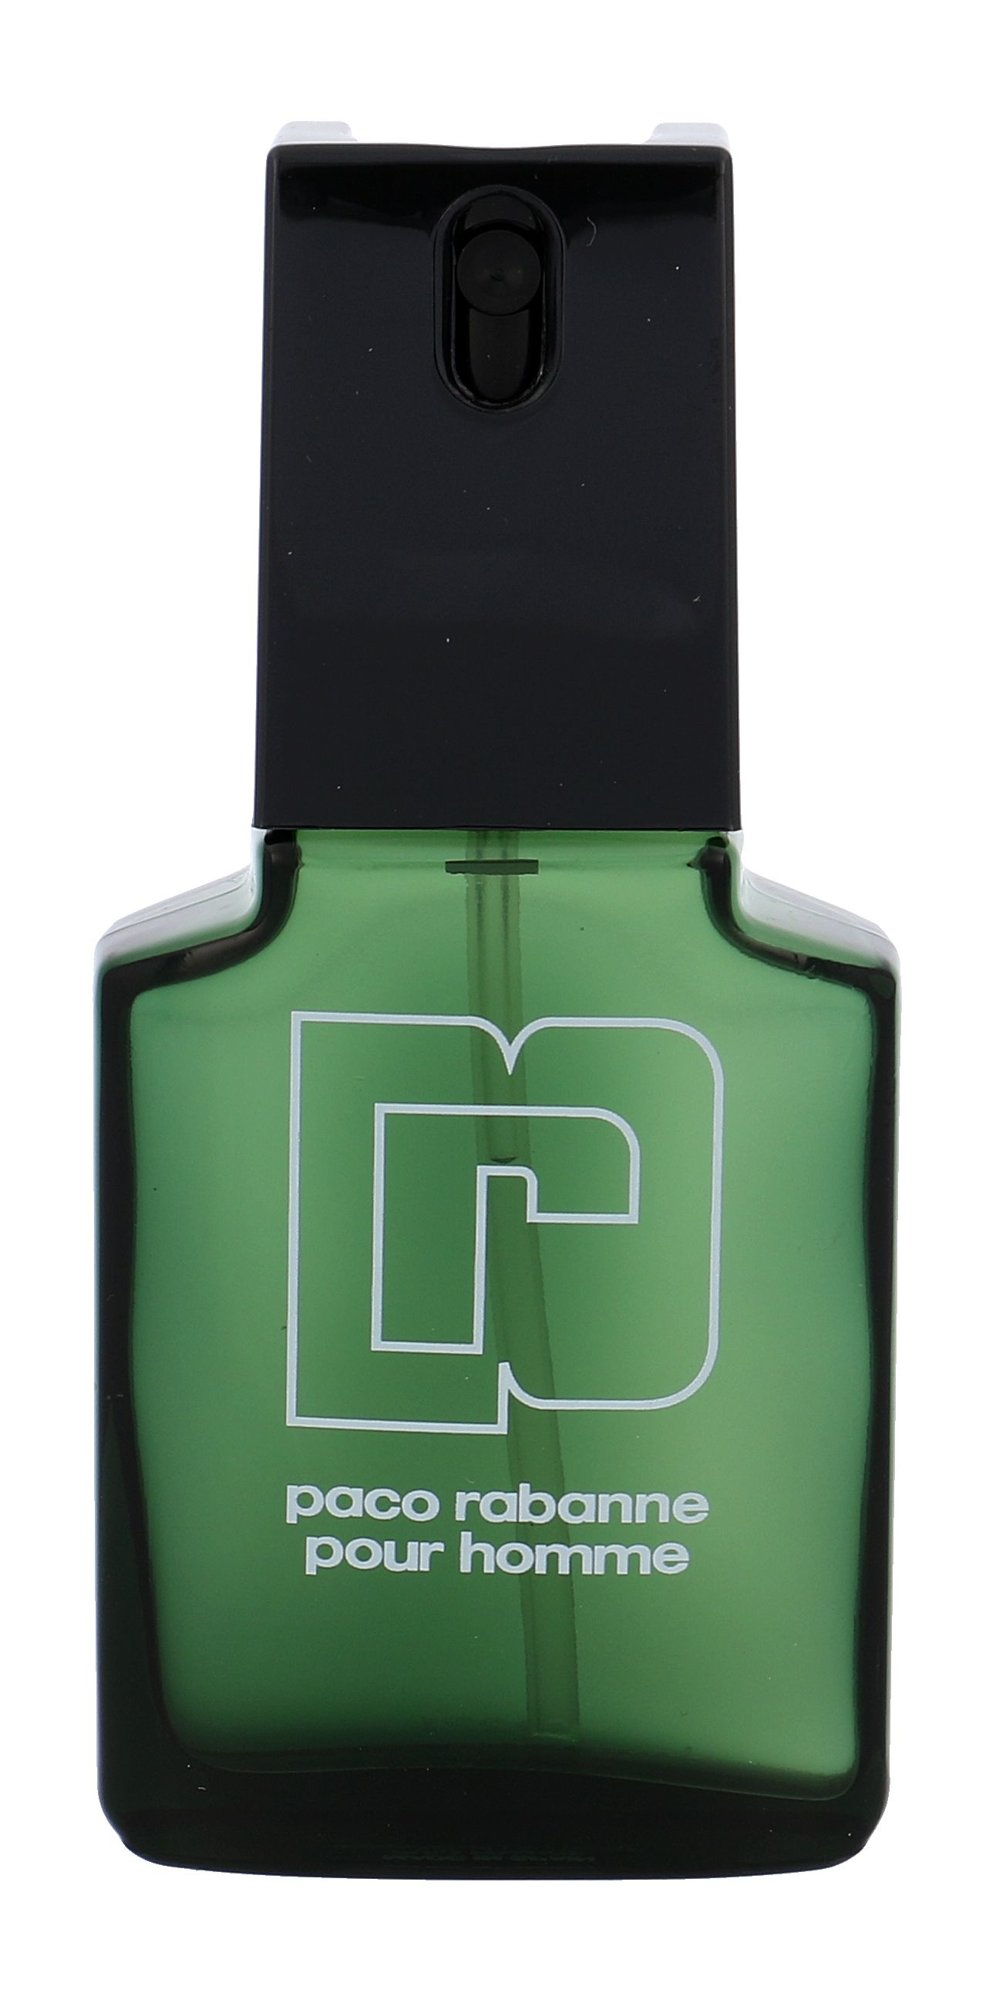 Paco Rabanne Paco Rabanne Pour Homme EDT 30ml